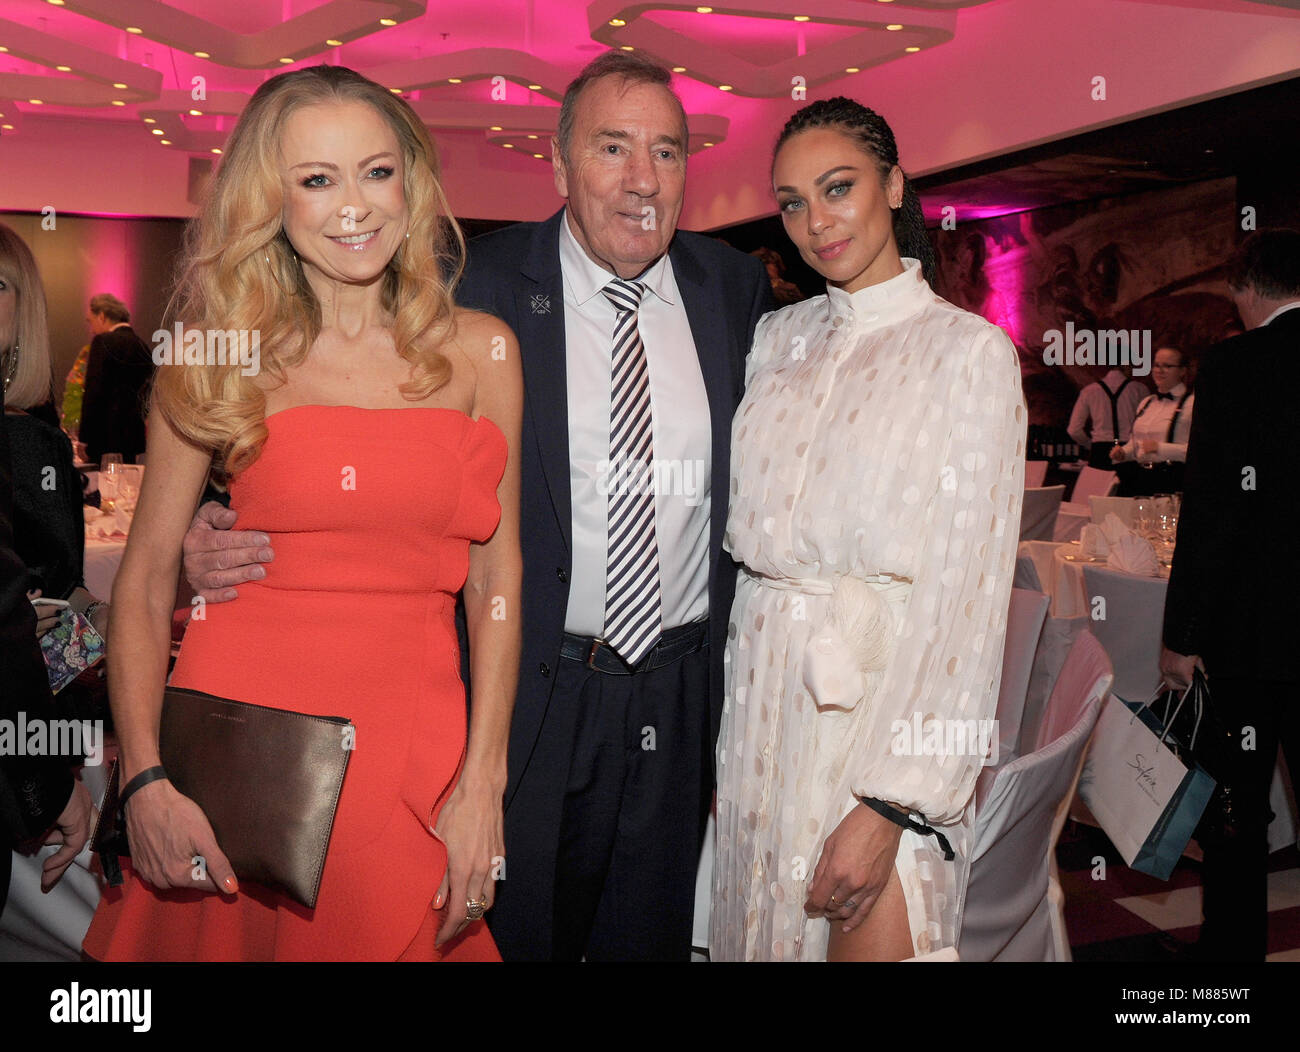 15 March 2018, Germany, Munich: Actress Jenny Elvers (L), Frank Fleschenberg, president of the Eagles Charity Golf - Stock Image